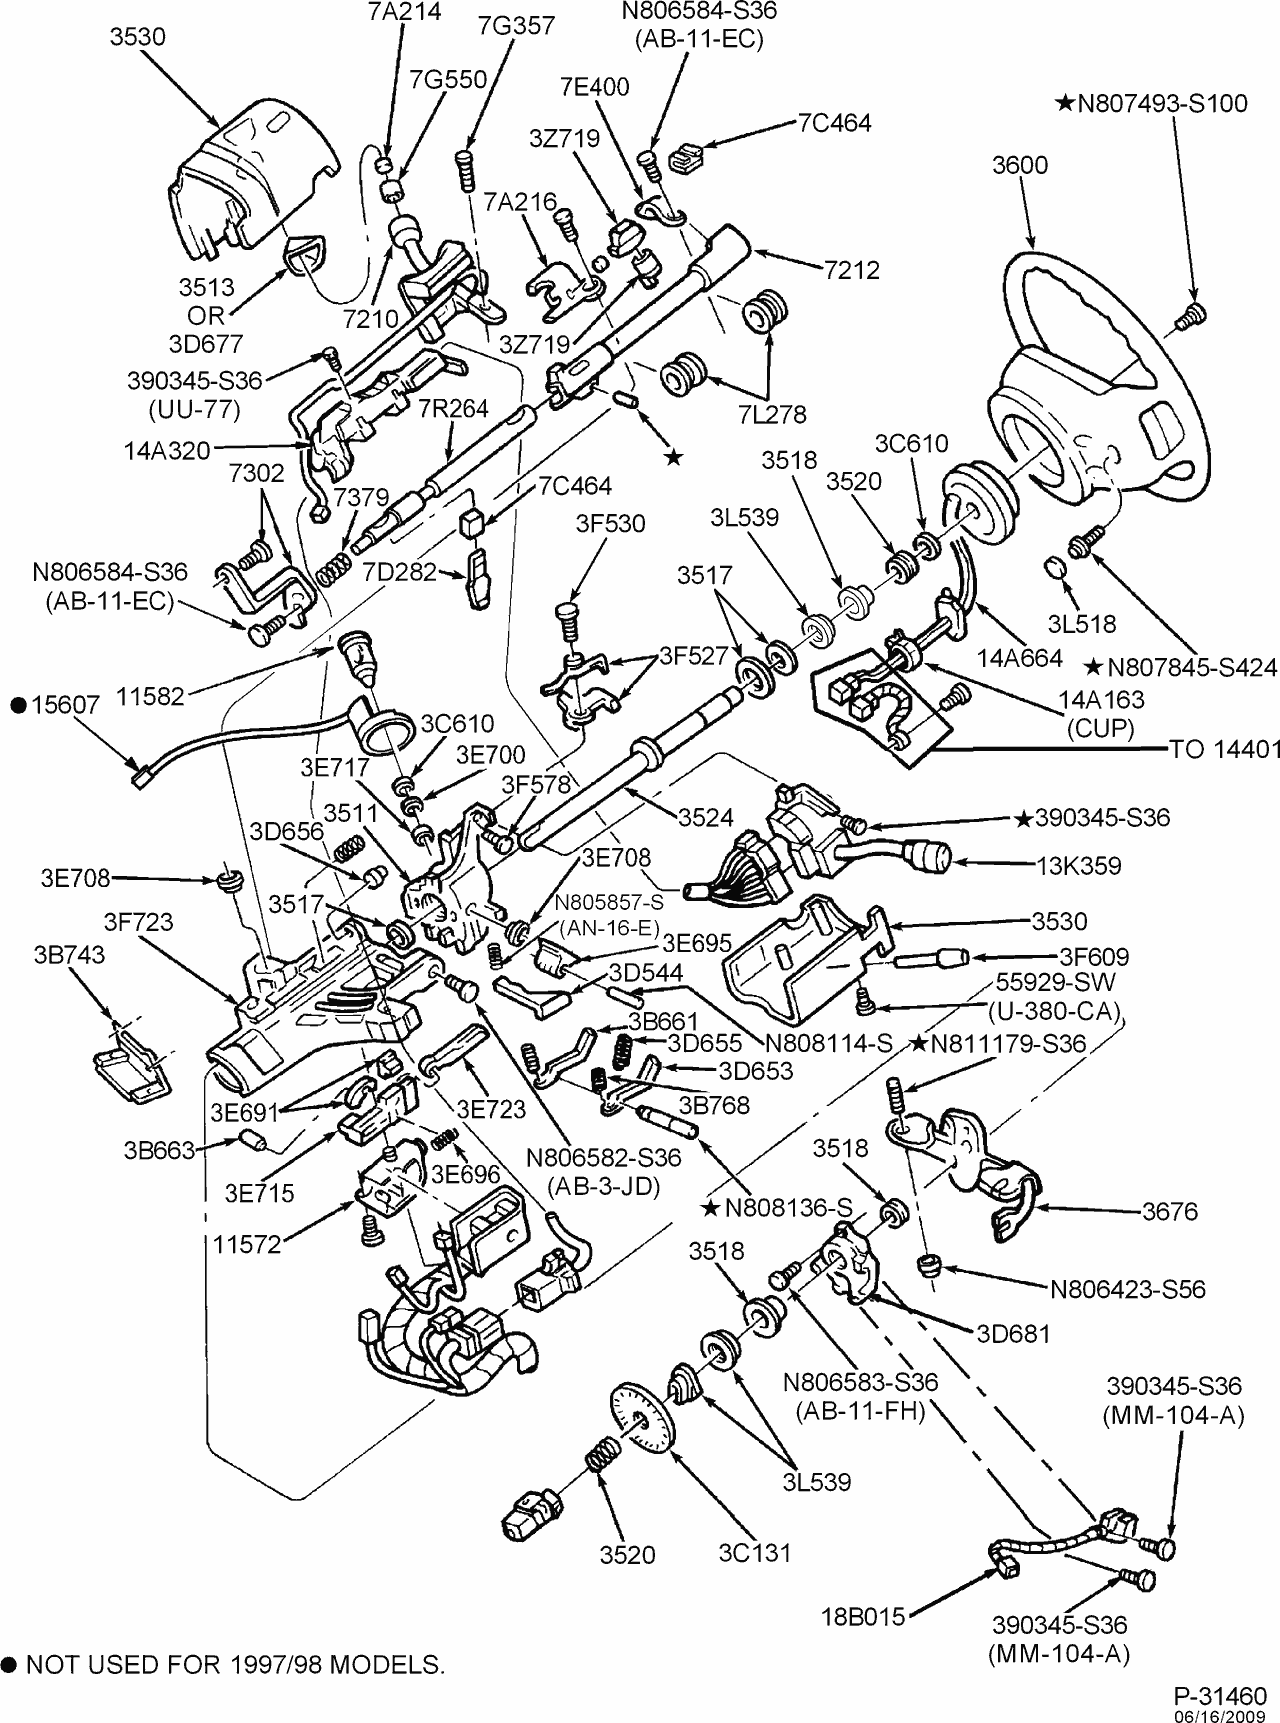 Exploded view results wiring diagram for 77 corvette at ww5 sssssssssssssssssddddsssssssssssss w